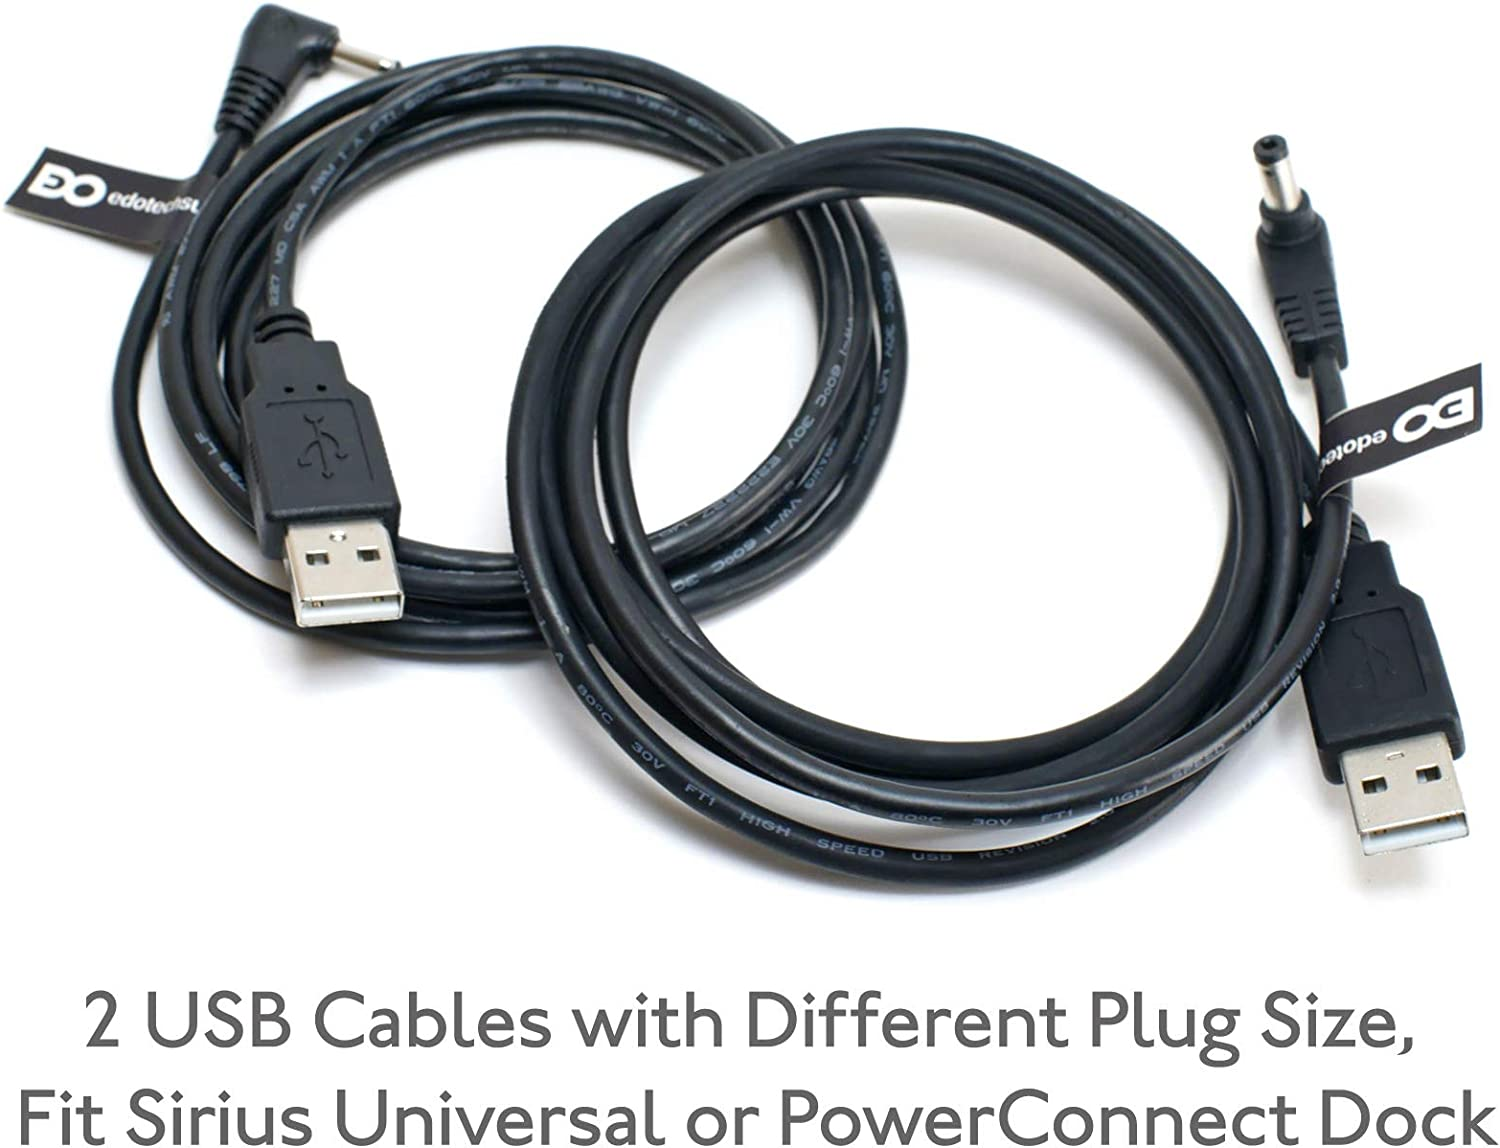 SIRIUS Sportster 4 power adapter USB Charger 90 degrees Cable Car or Home dock